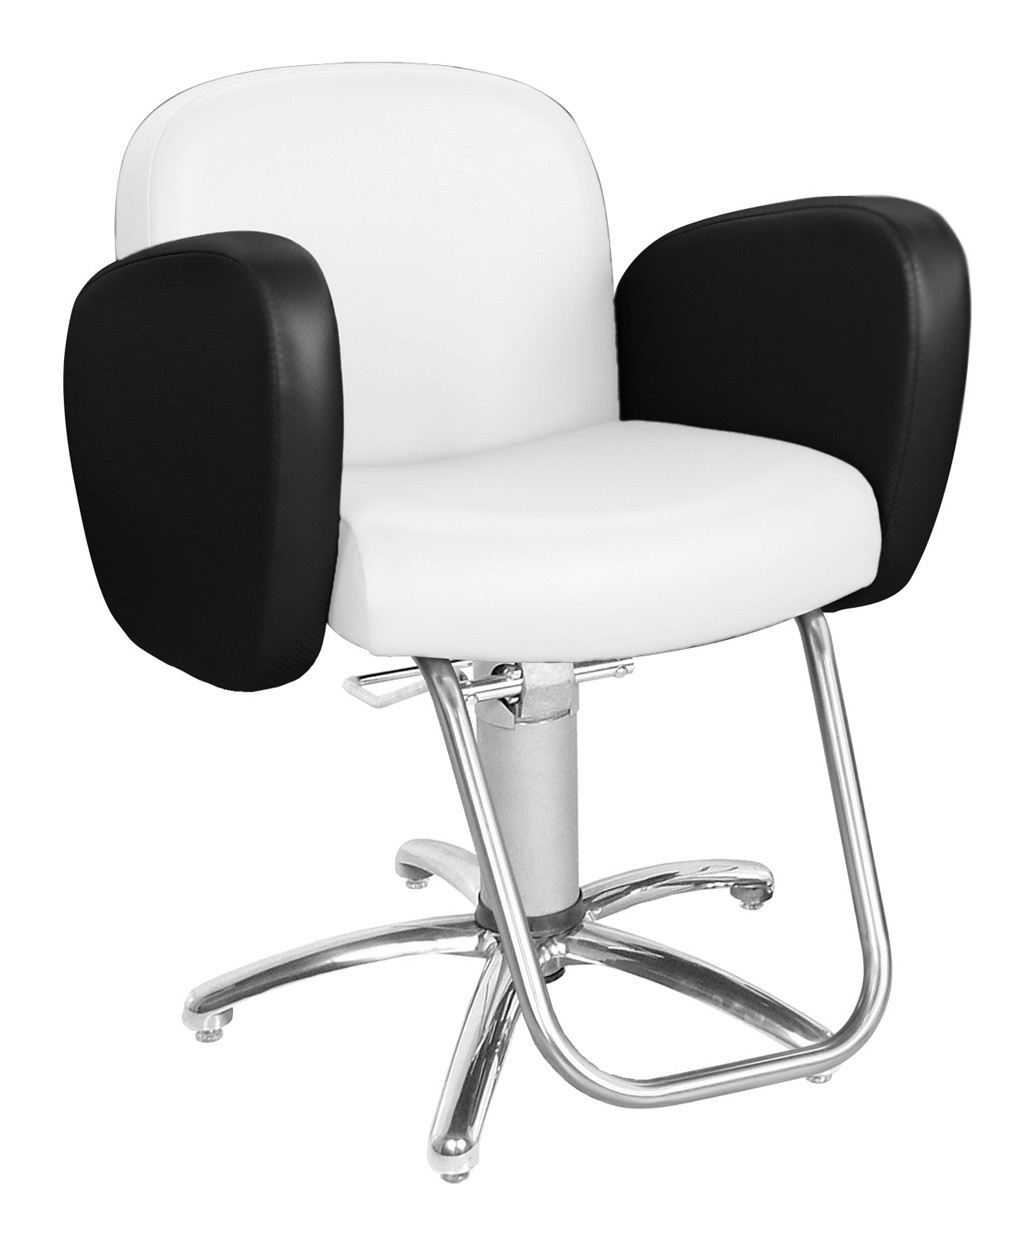 Collins 7200 ATL Styling Chair